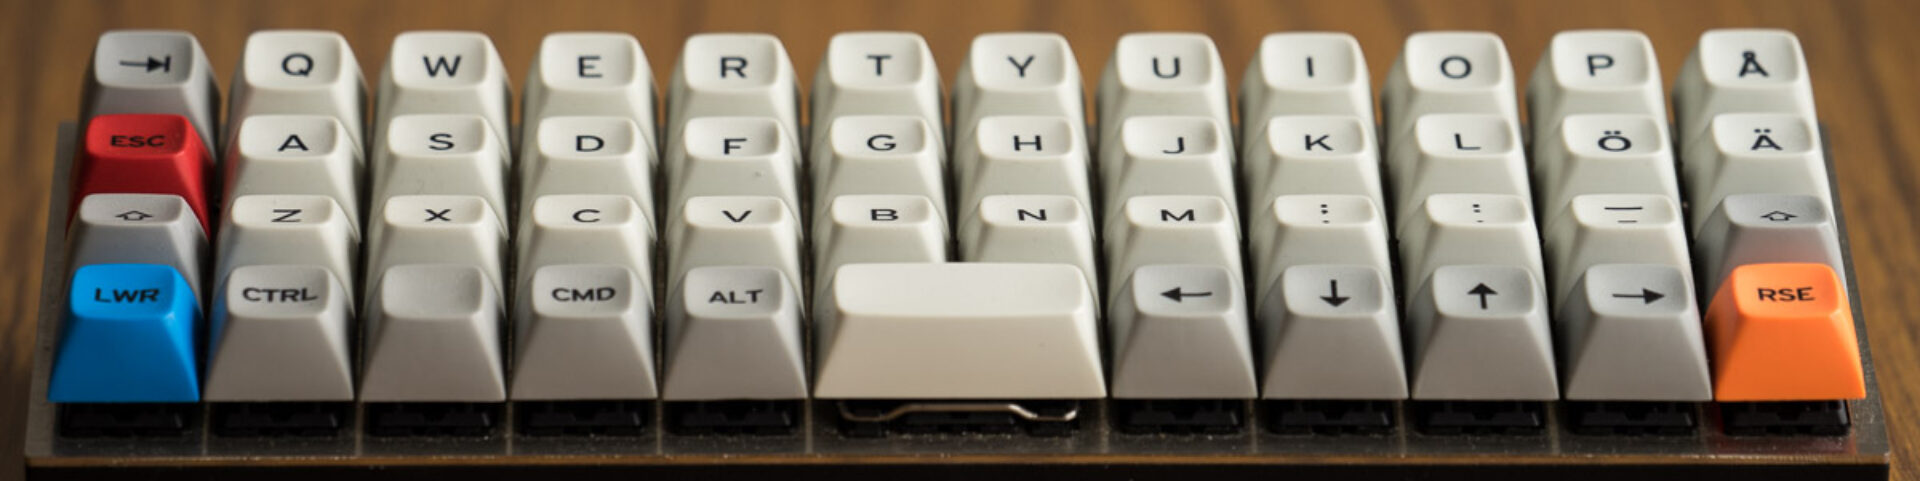 The Endgame Keyboard